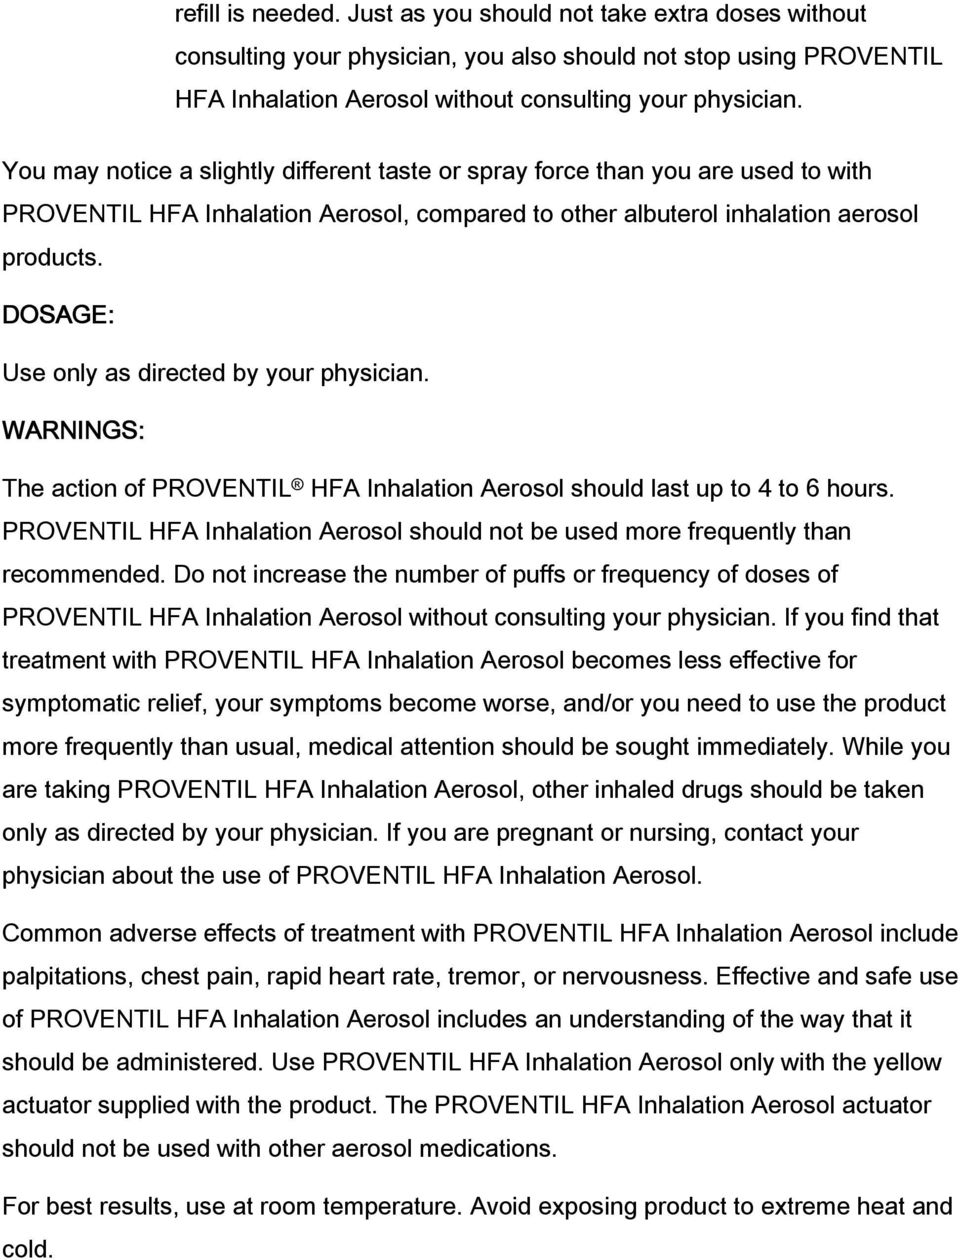 DOSAGE: Use only as directed by your physician. WARNINGS: The action of PROVENTIL HFA Inhalation Aerosol should last up to 4 to 6 hours.